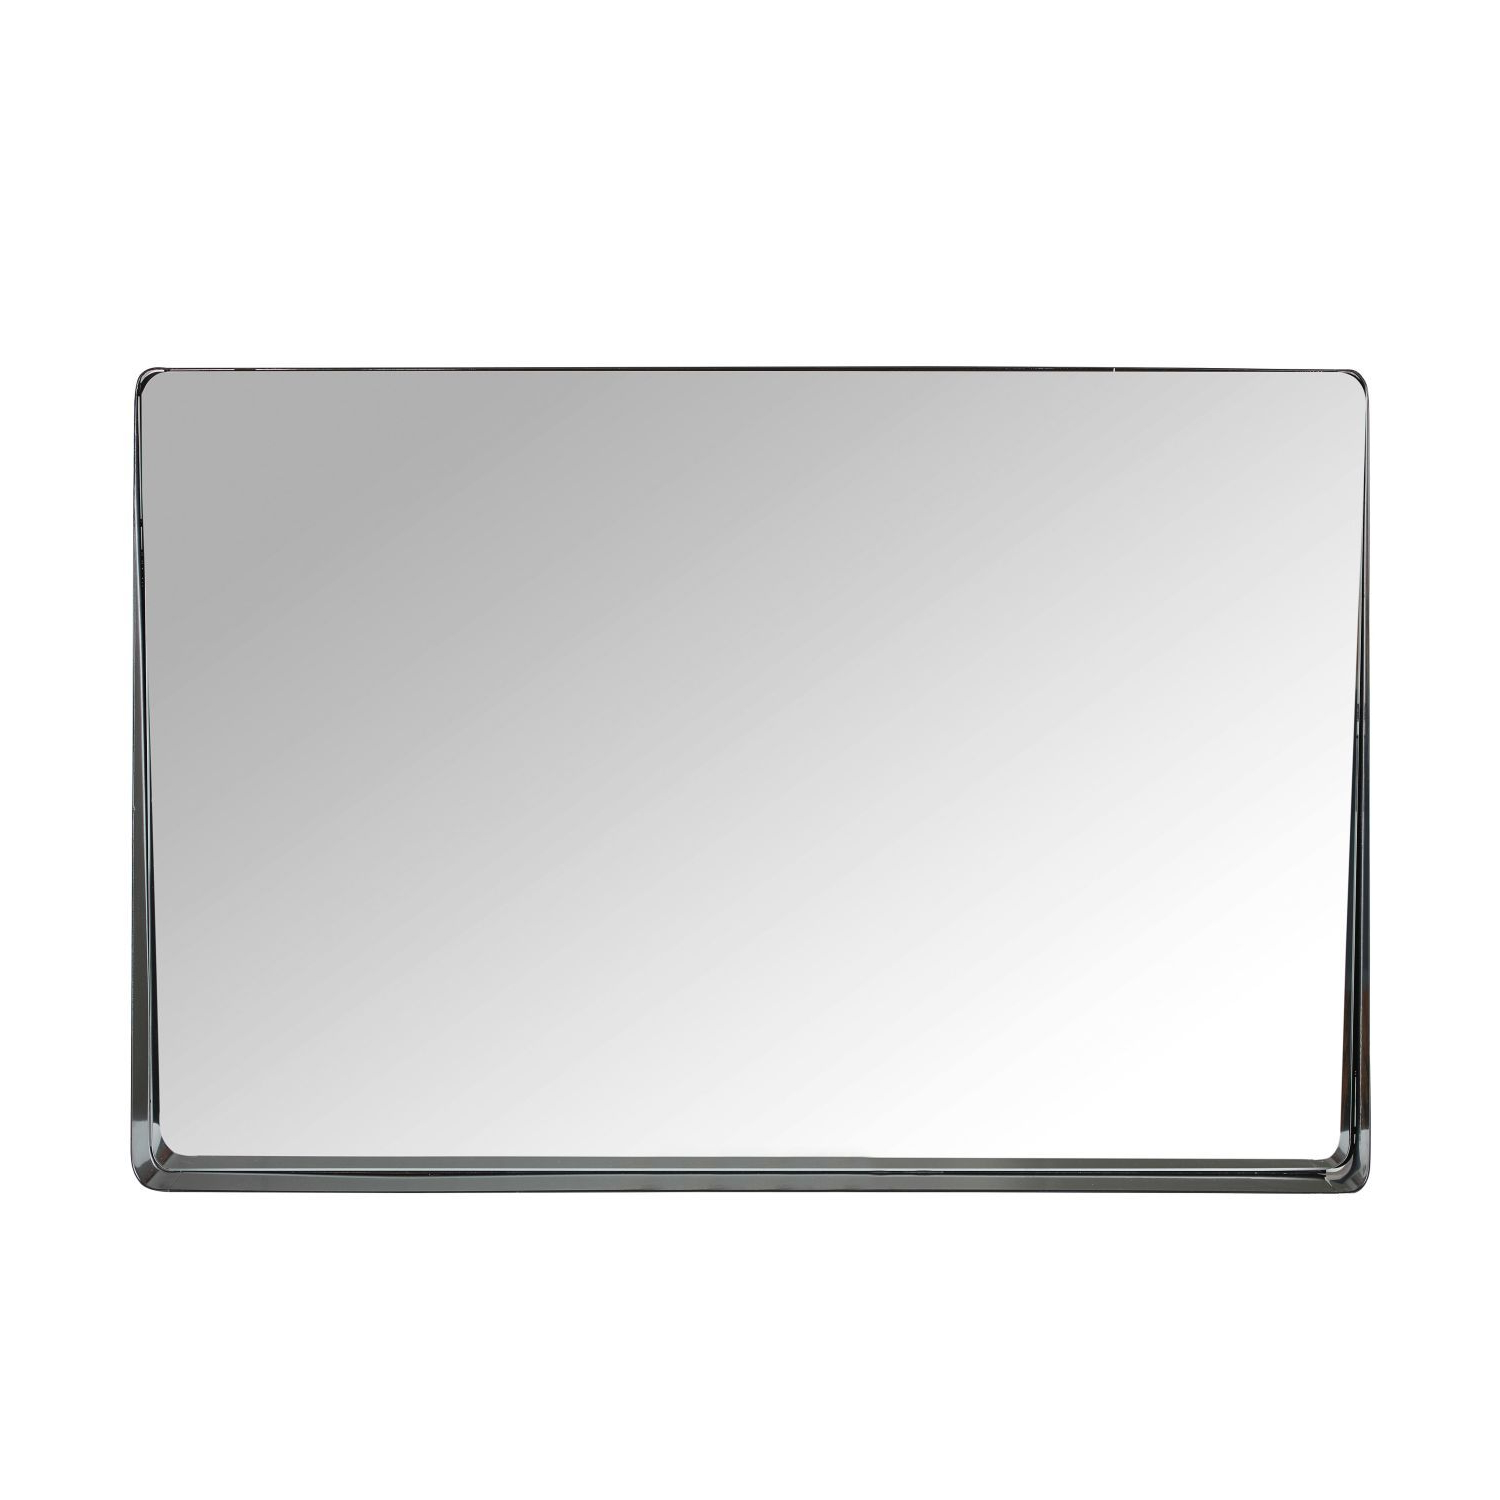 Metal Mirror, Mirror With Pertaining To Recent Newtown Accent Mirrors (View 9 of 20)